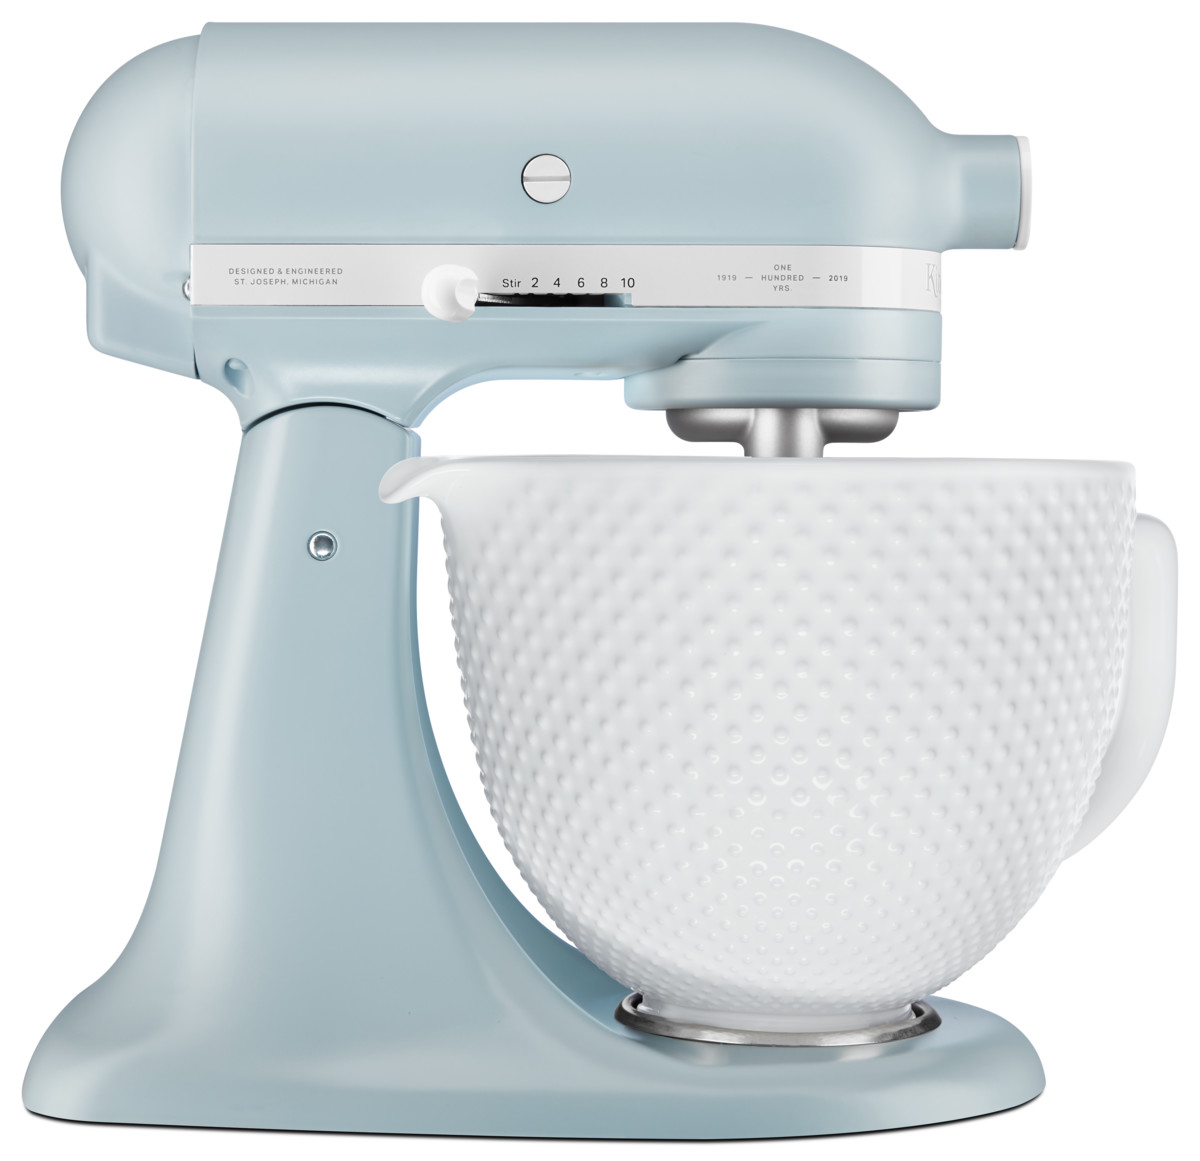 Kitchenaid Küchenmaschine Idealo Kitchenaid Artisan 5ksm180rcemb Misty Blue Limited Edition